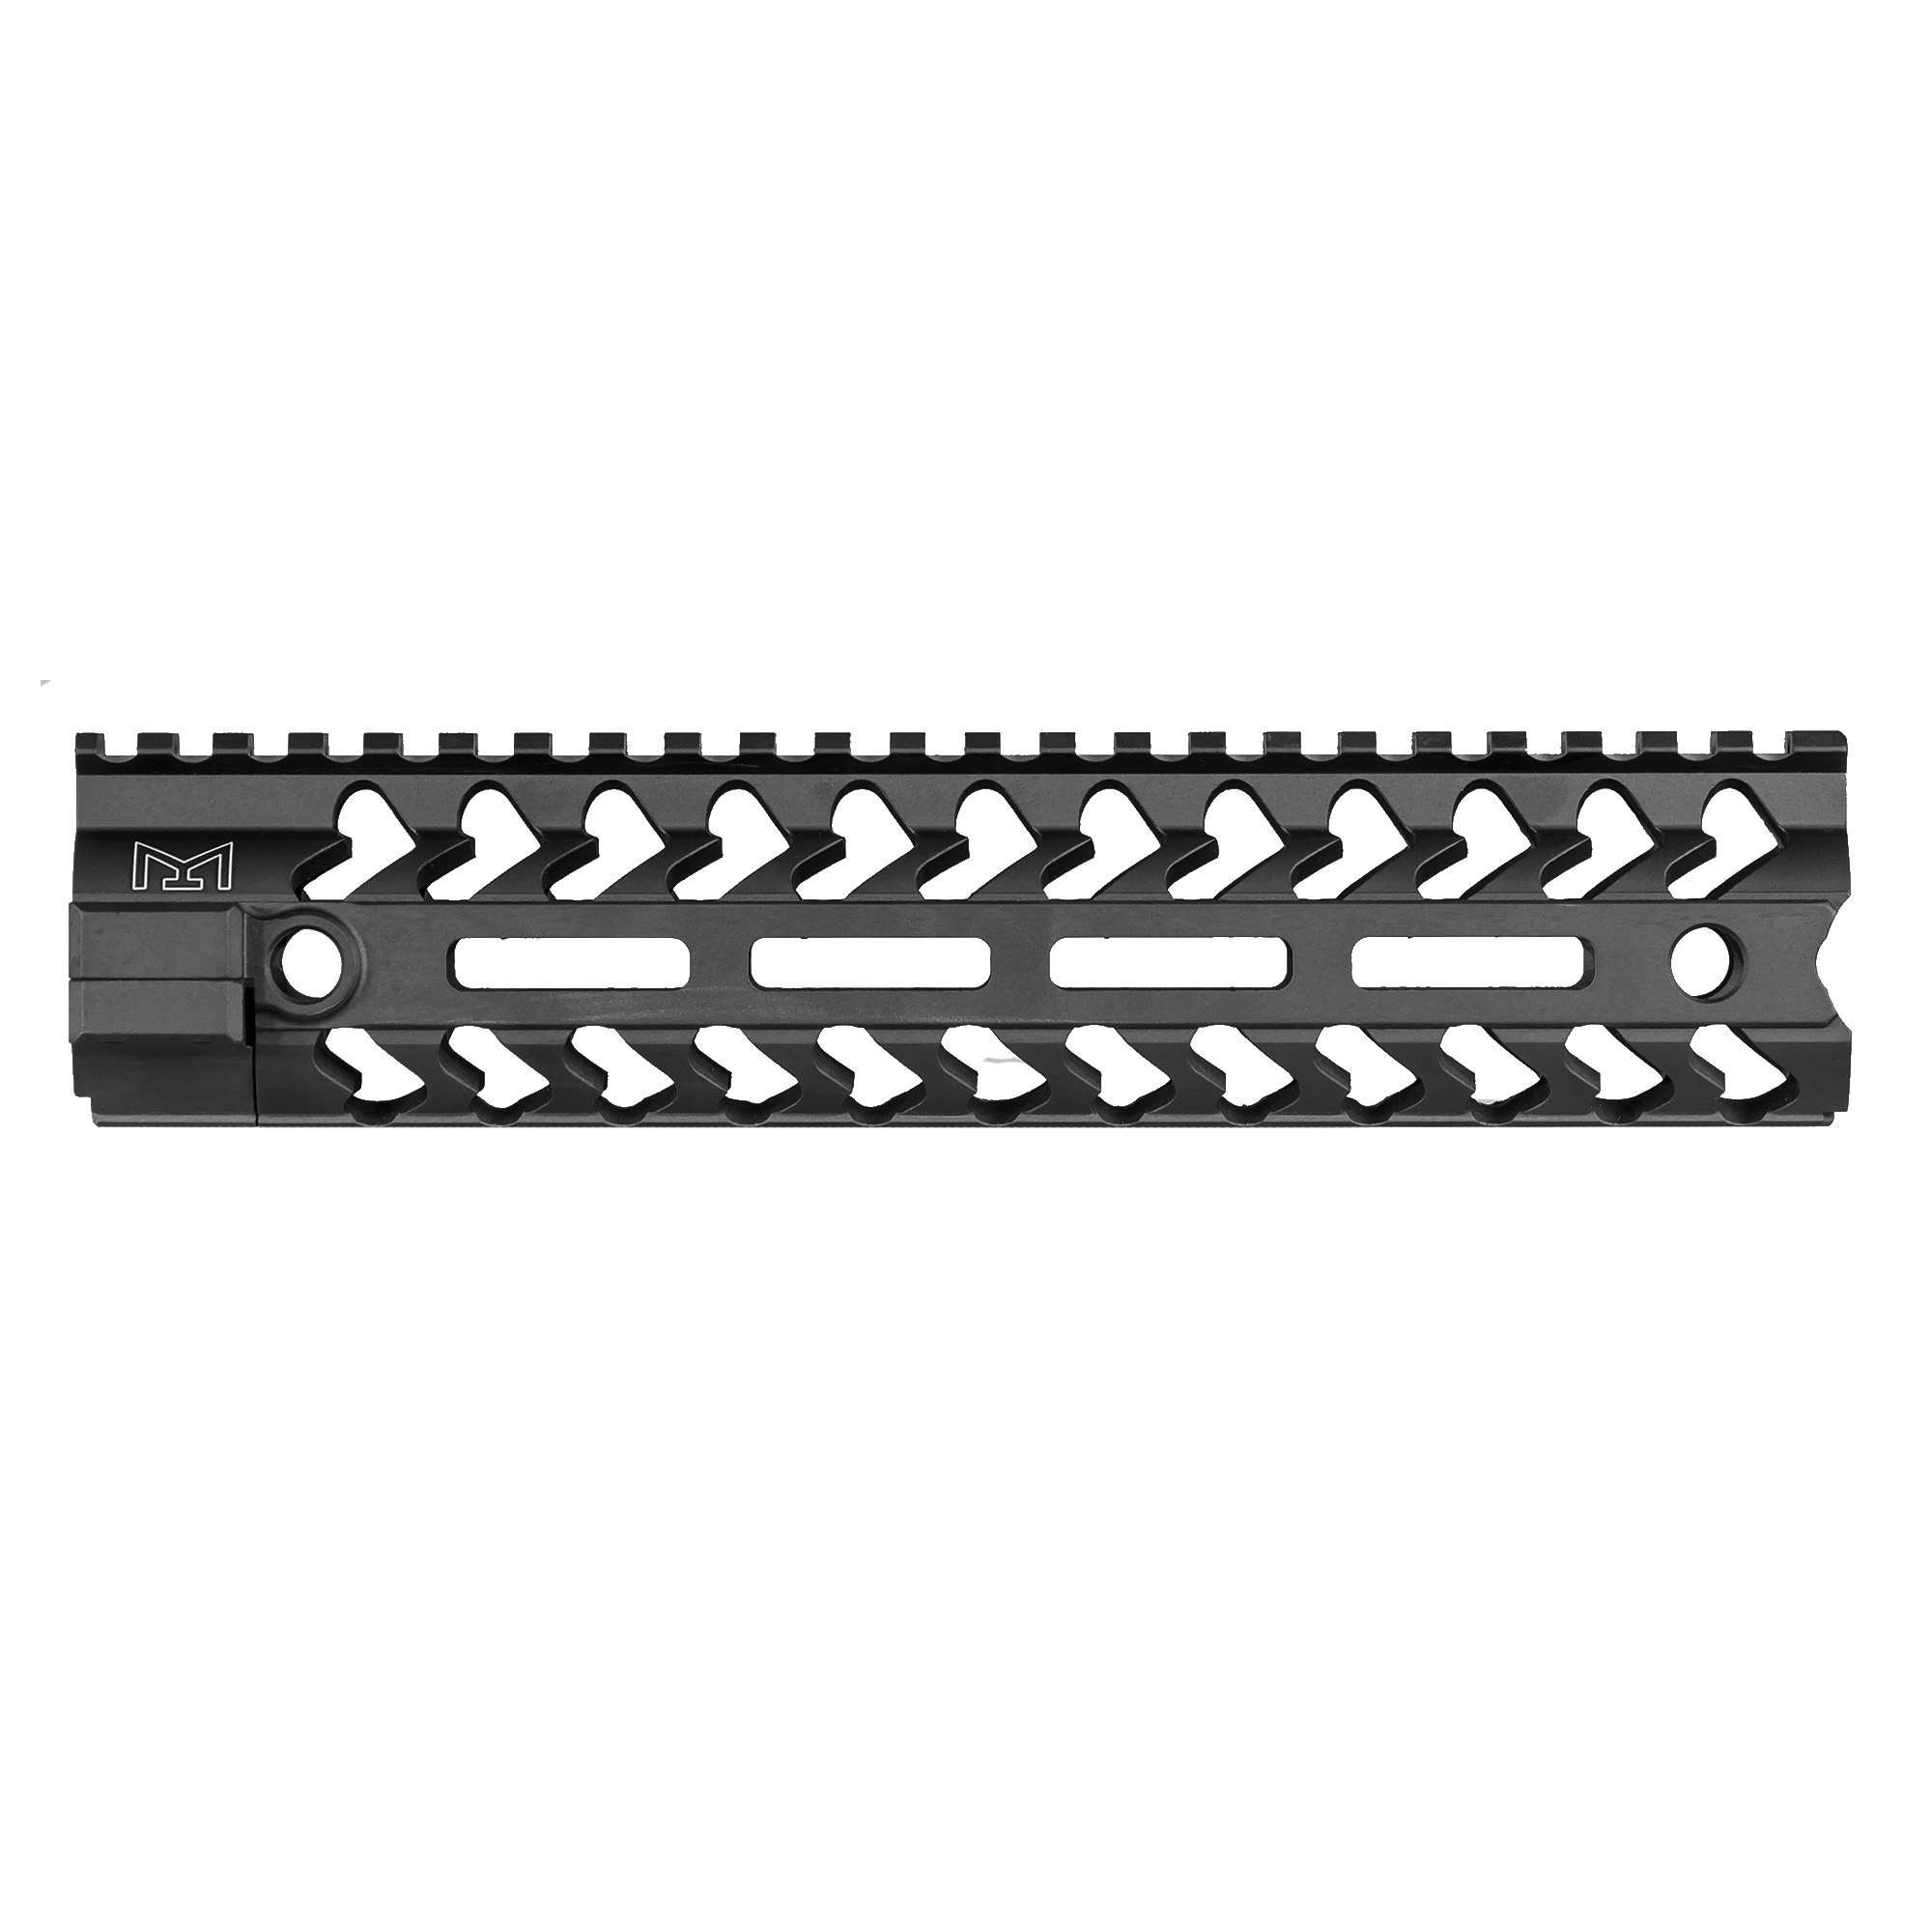 """Following the successful release of the YHM S.L.K. and KR7 KeyMod handguards and in response to customer demand"""" Yankee Hill Machine is proud to introduce their new line of M-LOK rails"""" providing the same lightweight durability with the added versatility of the popular mounting platform. Features a full-length picatinny top rail and Keymod mounting system at the 3"""" 6 and 9 O'clock positions."""